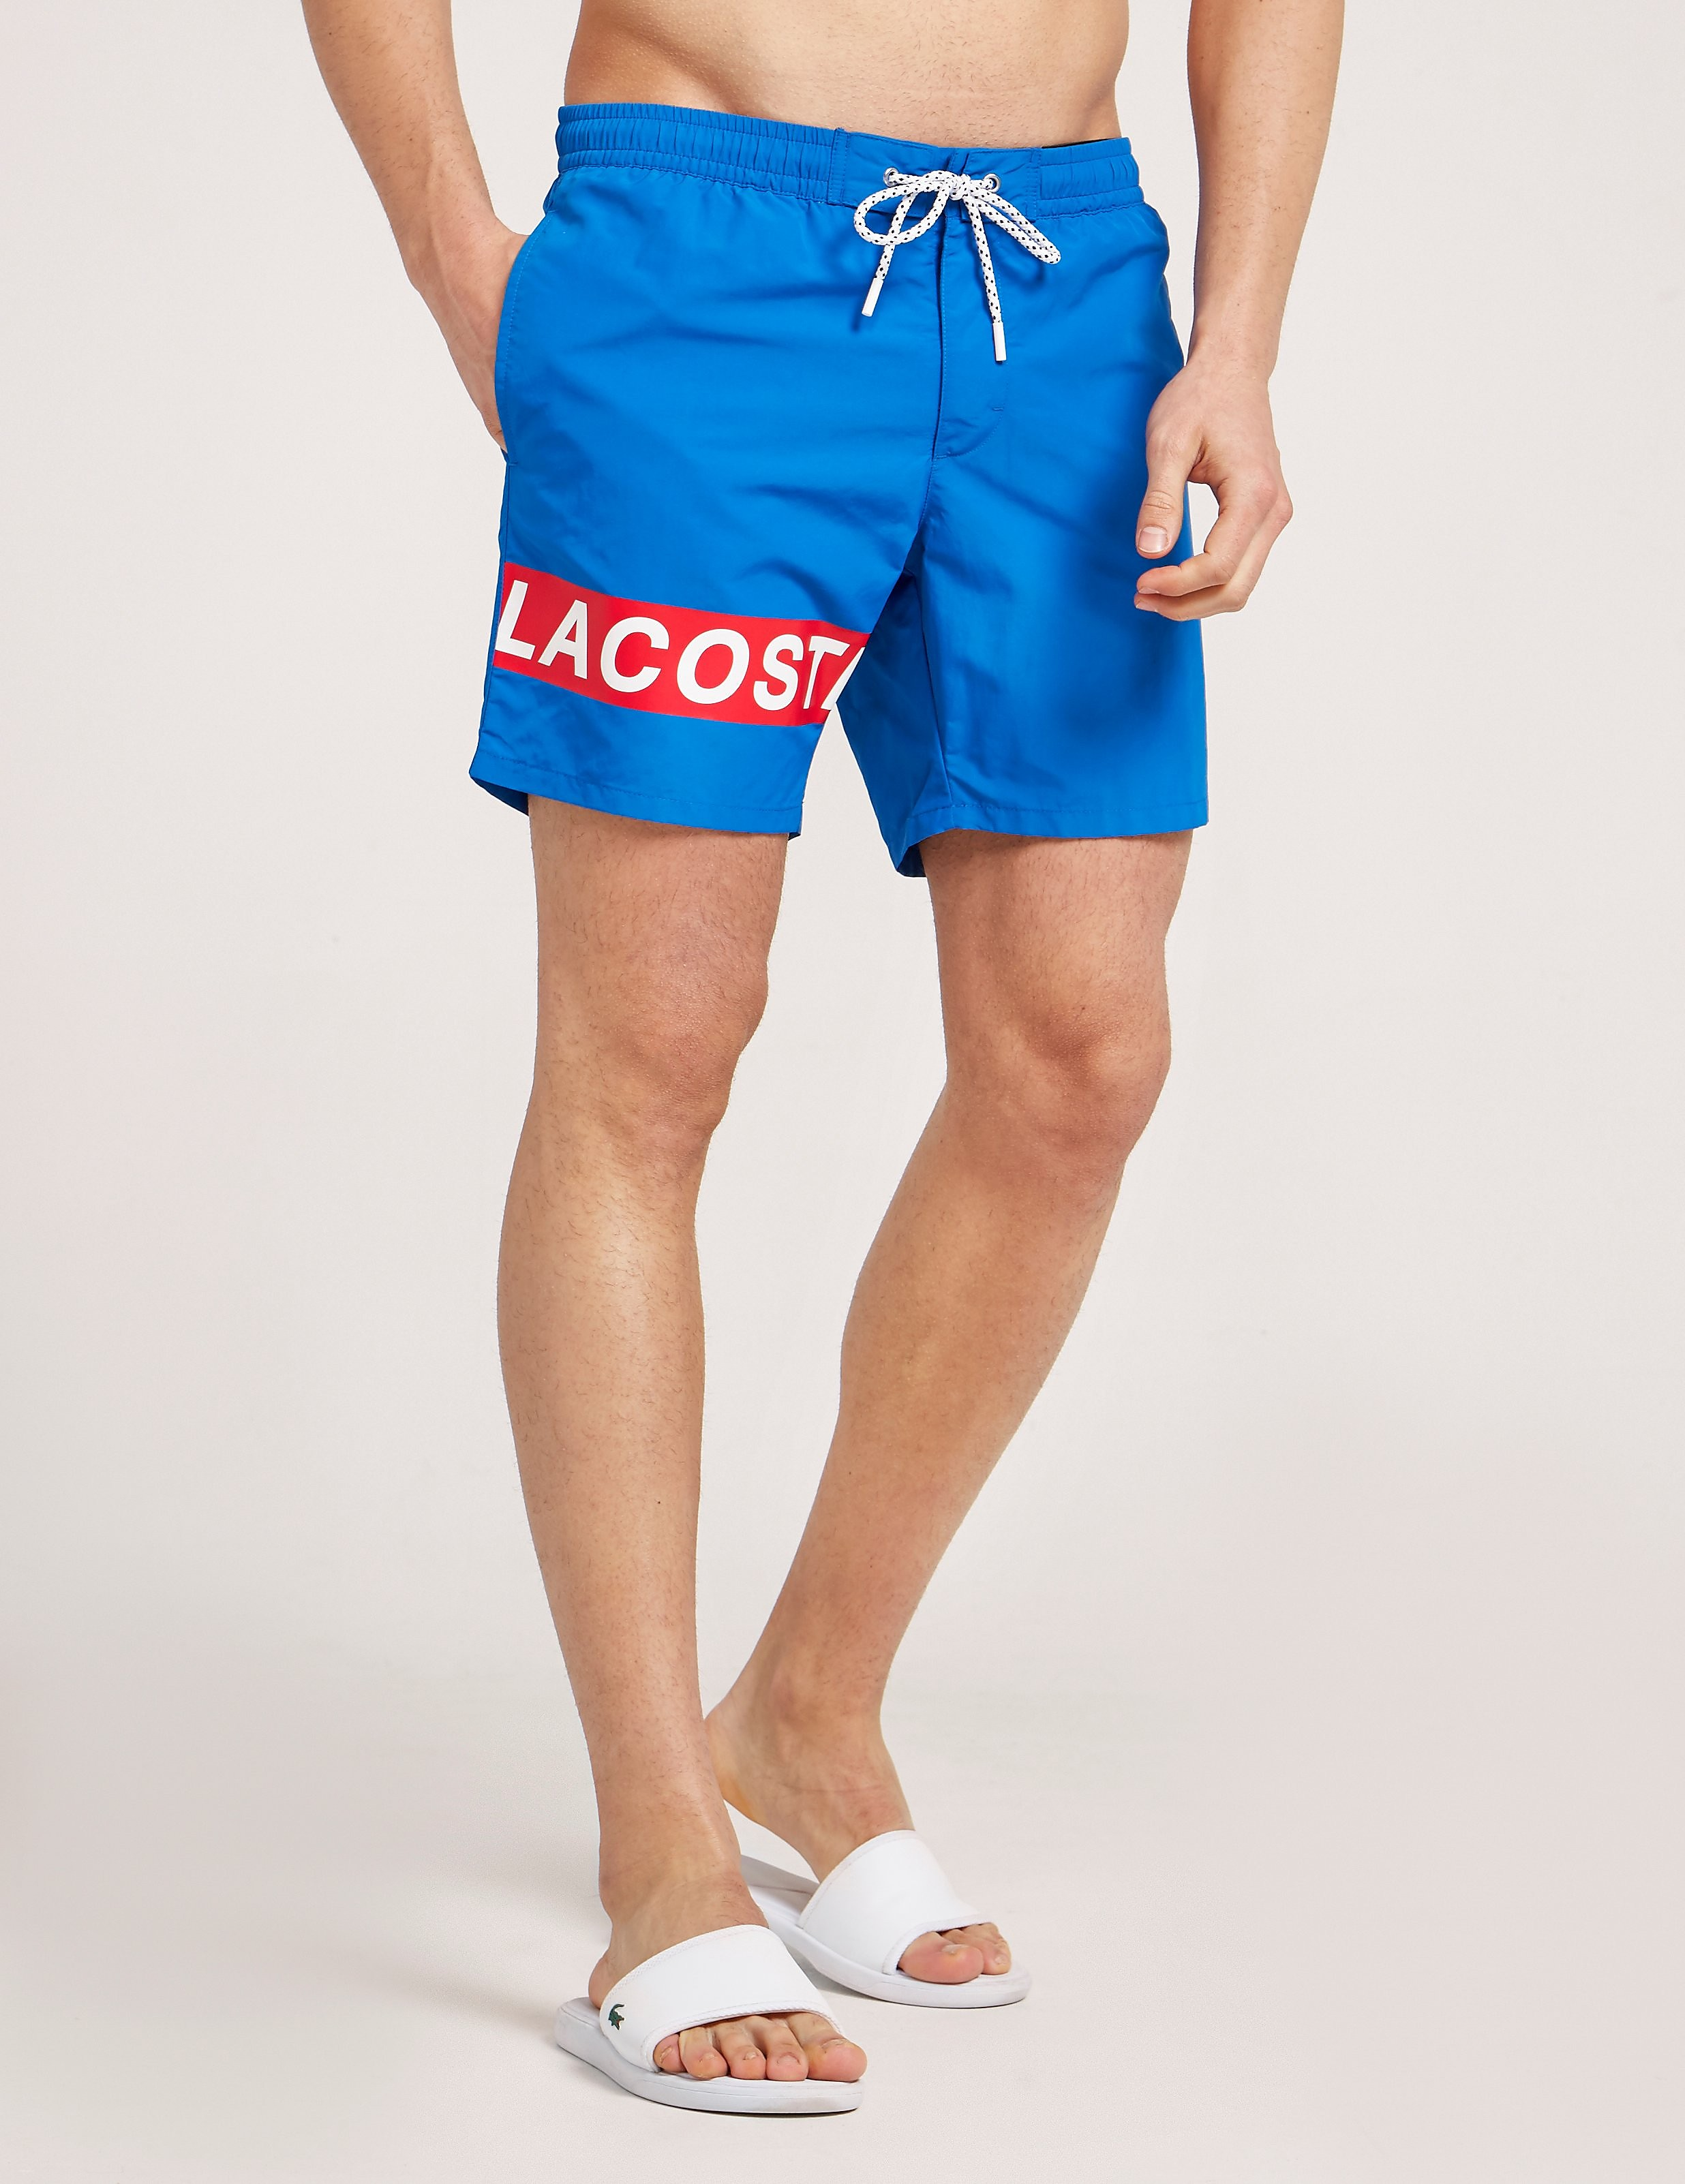 Lacoste Branded Swim Shorts